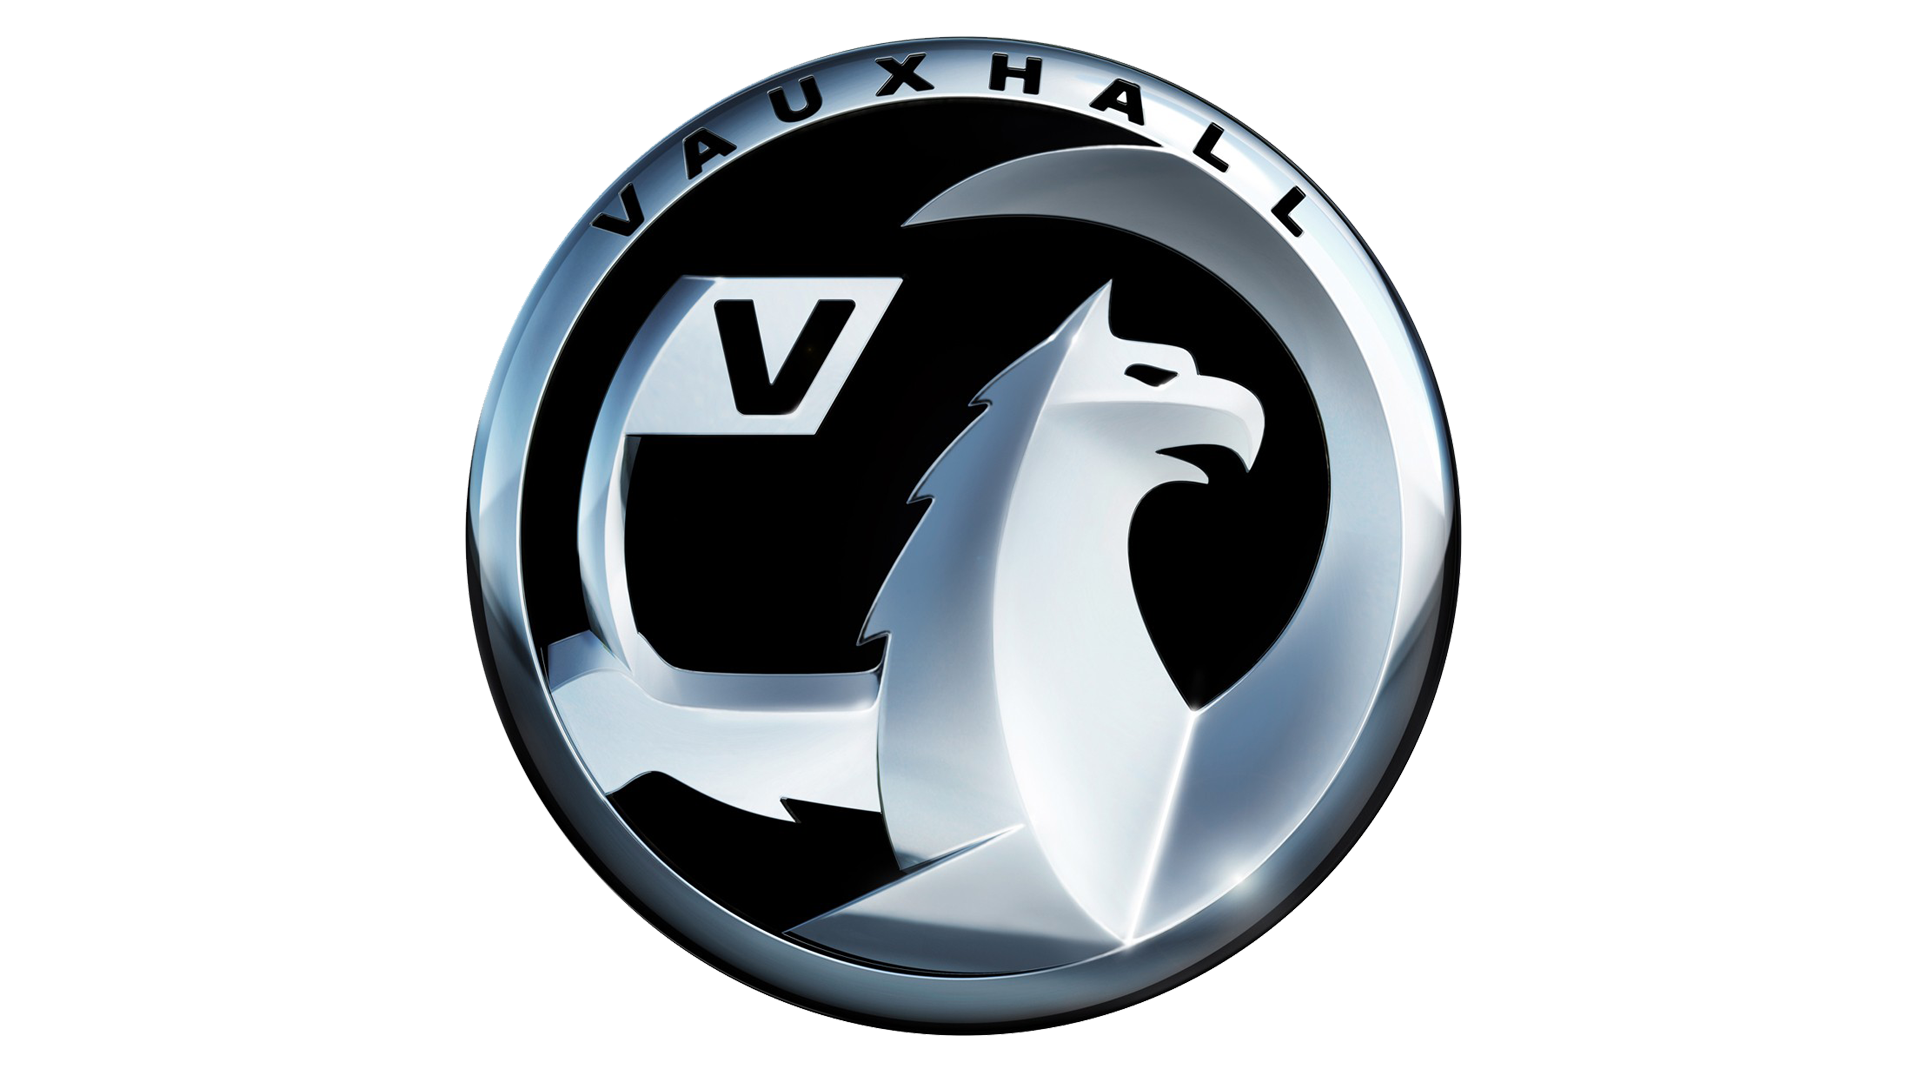 Vauxhall Logo, HD Png, Meaning, Information | Carlogos.org